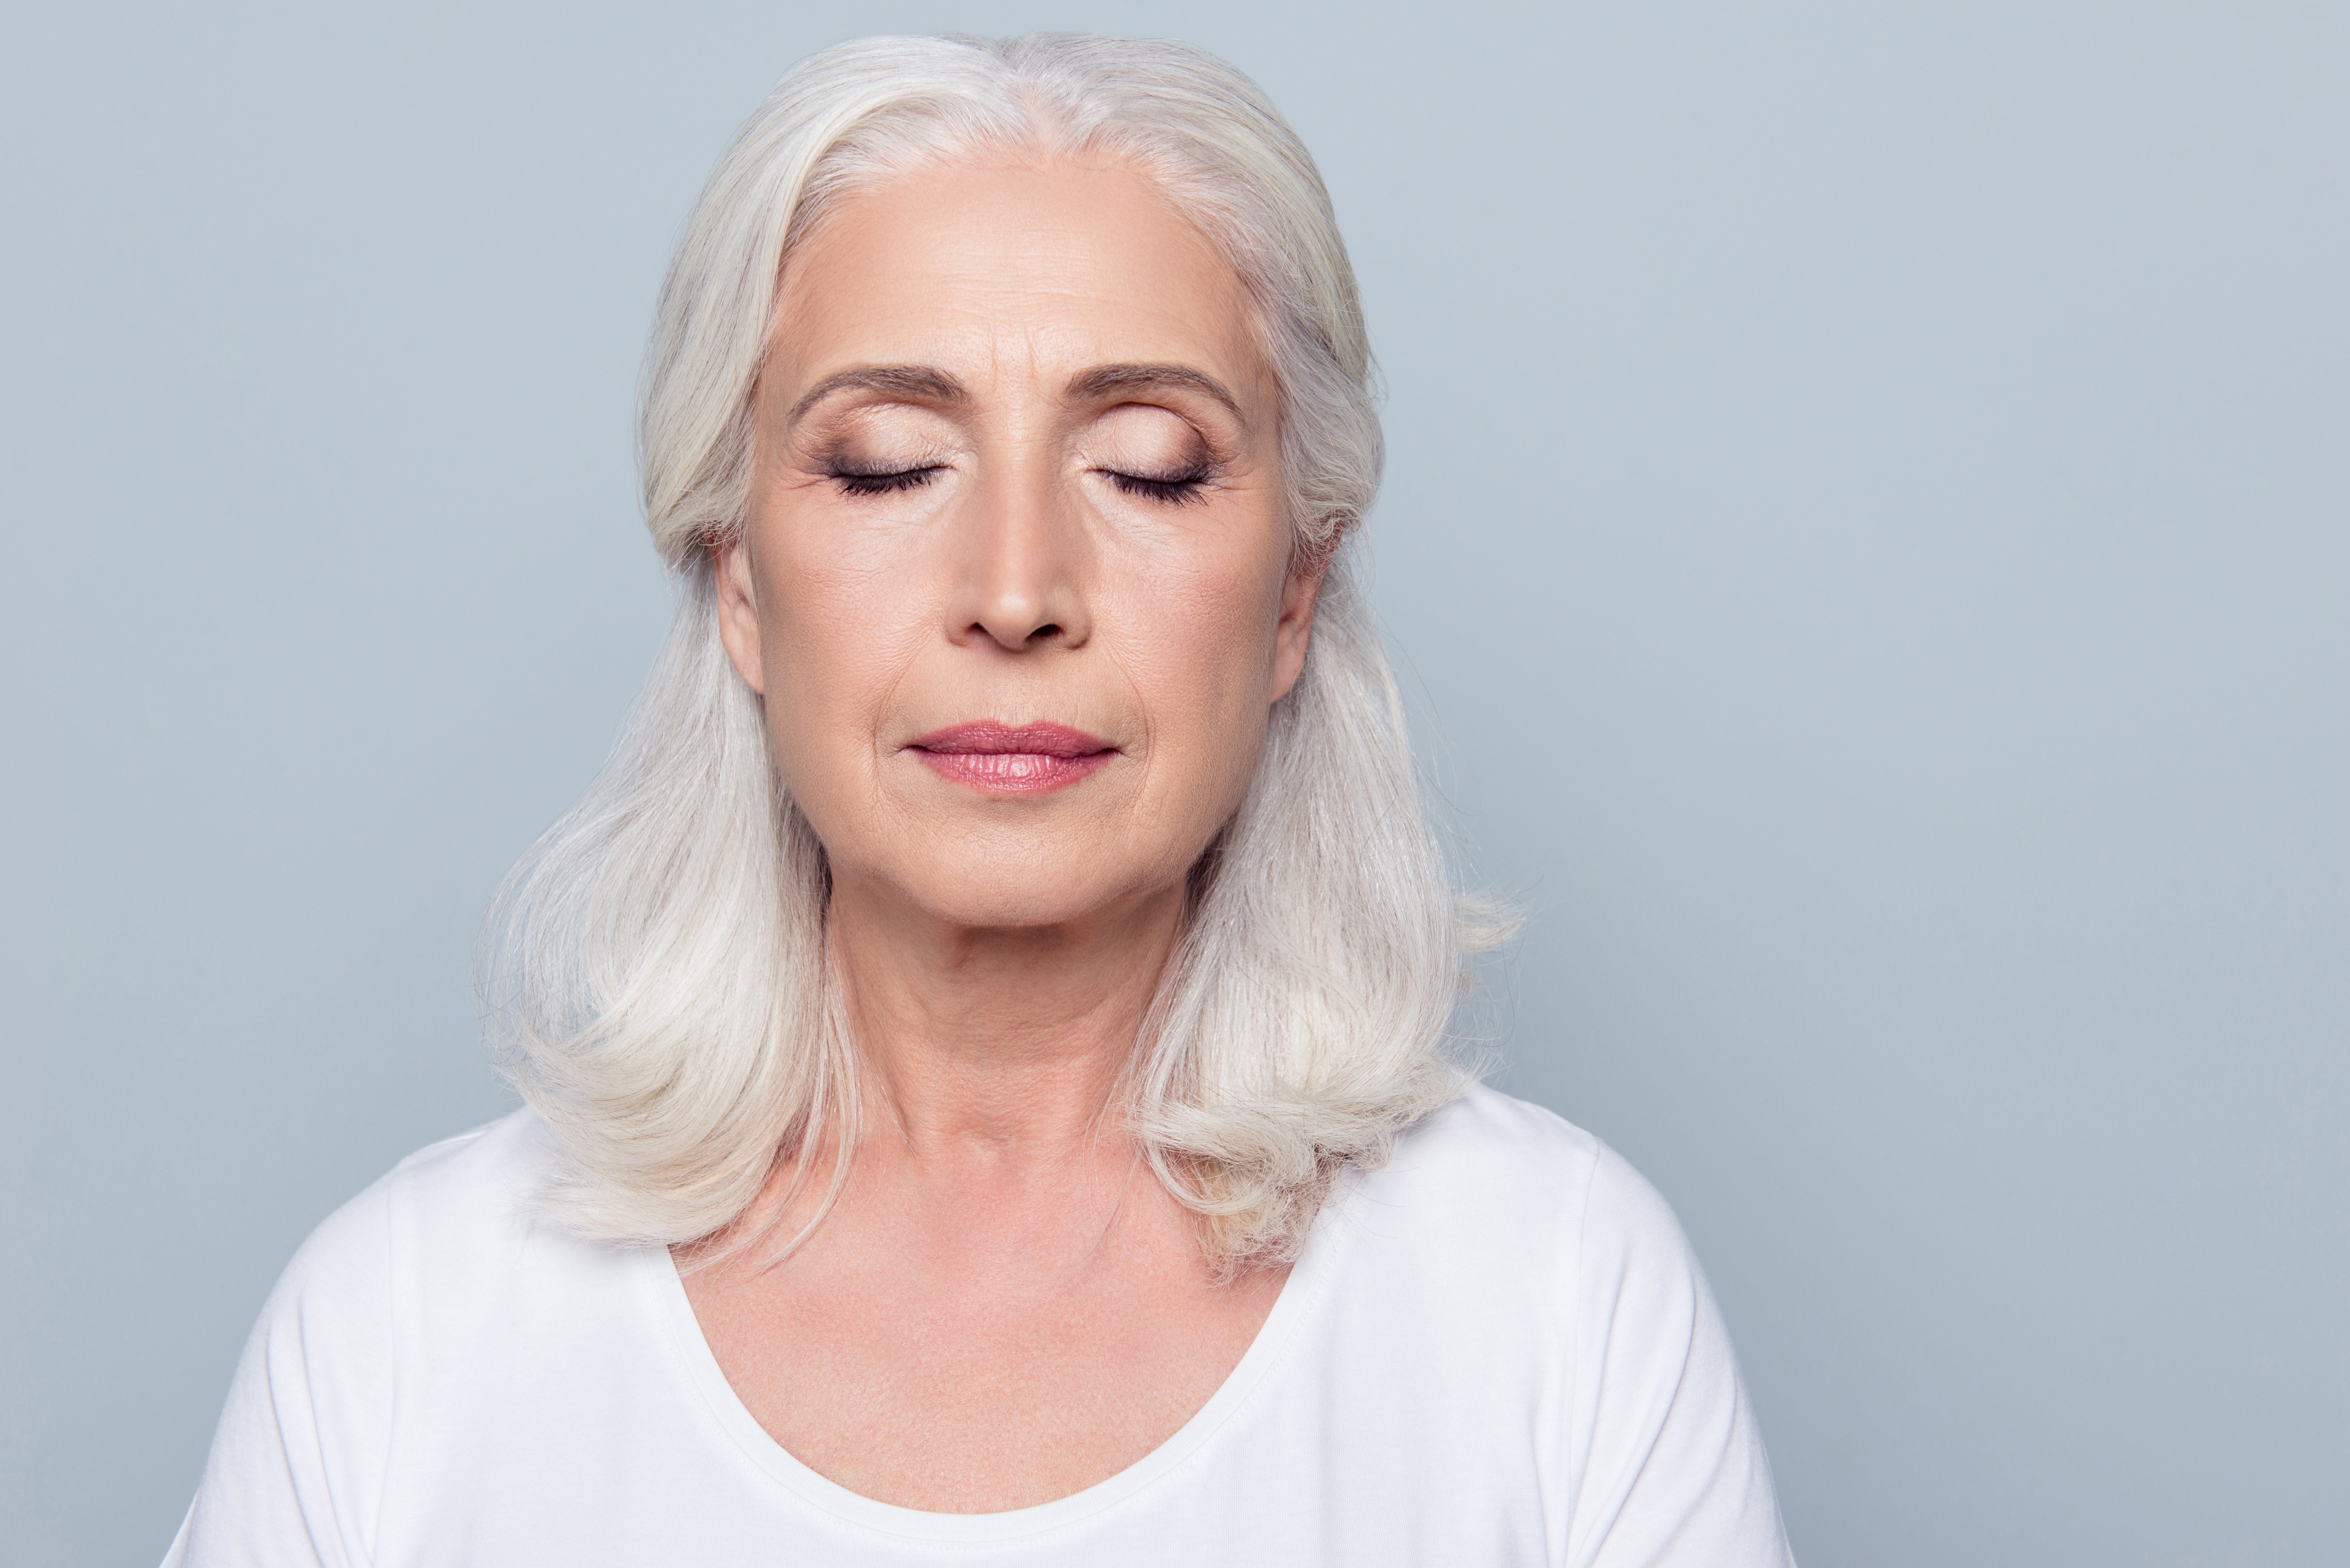 Common Causes of Sagging Eyelids and Their Treatment - Contours Rx